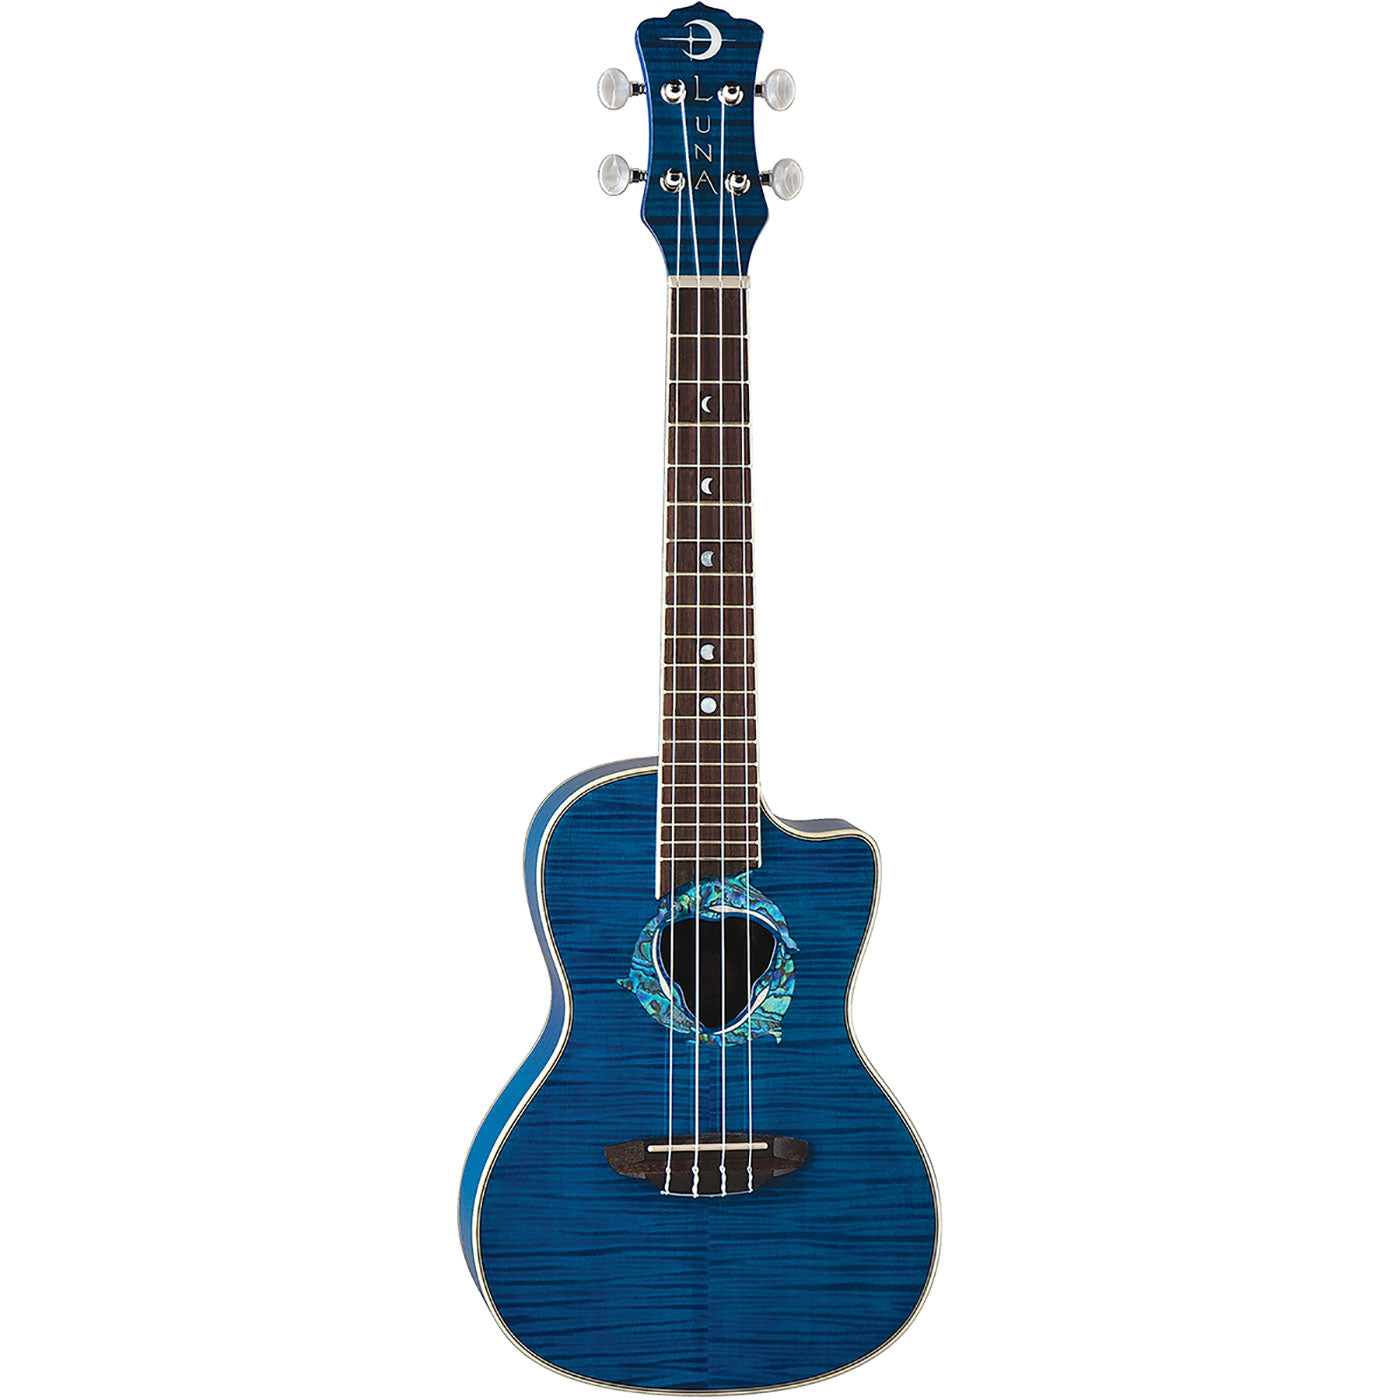 Luna Dolphin Ukulele Flame Top Concert Trans Blue w/Preamp